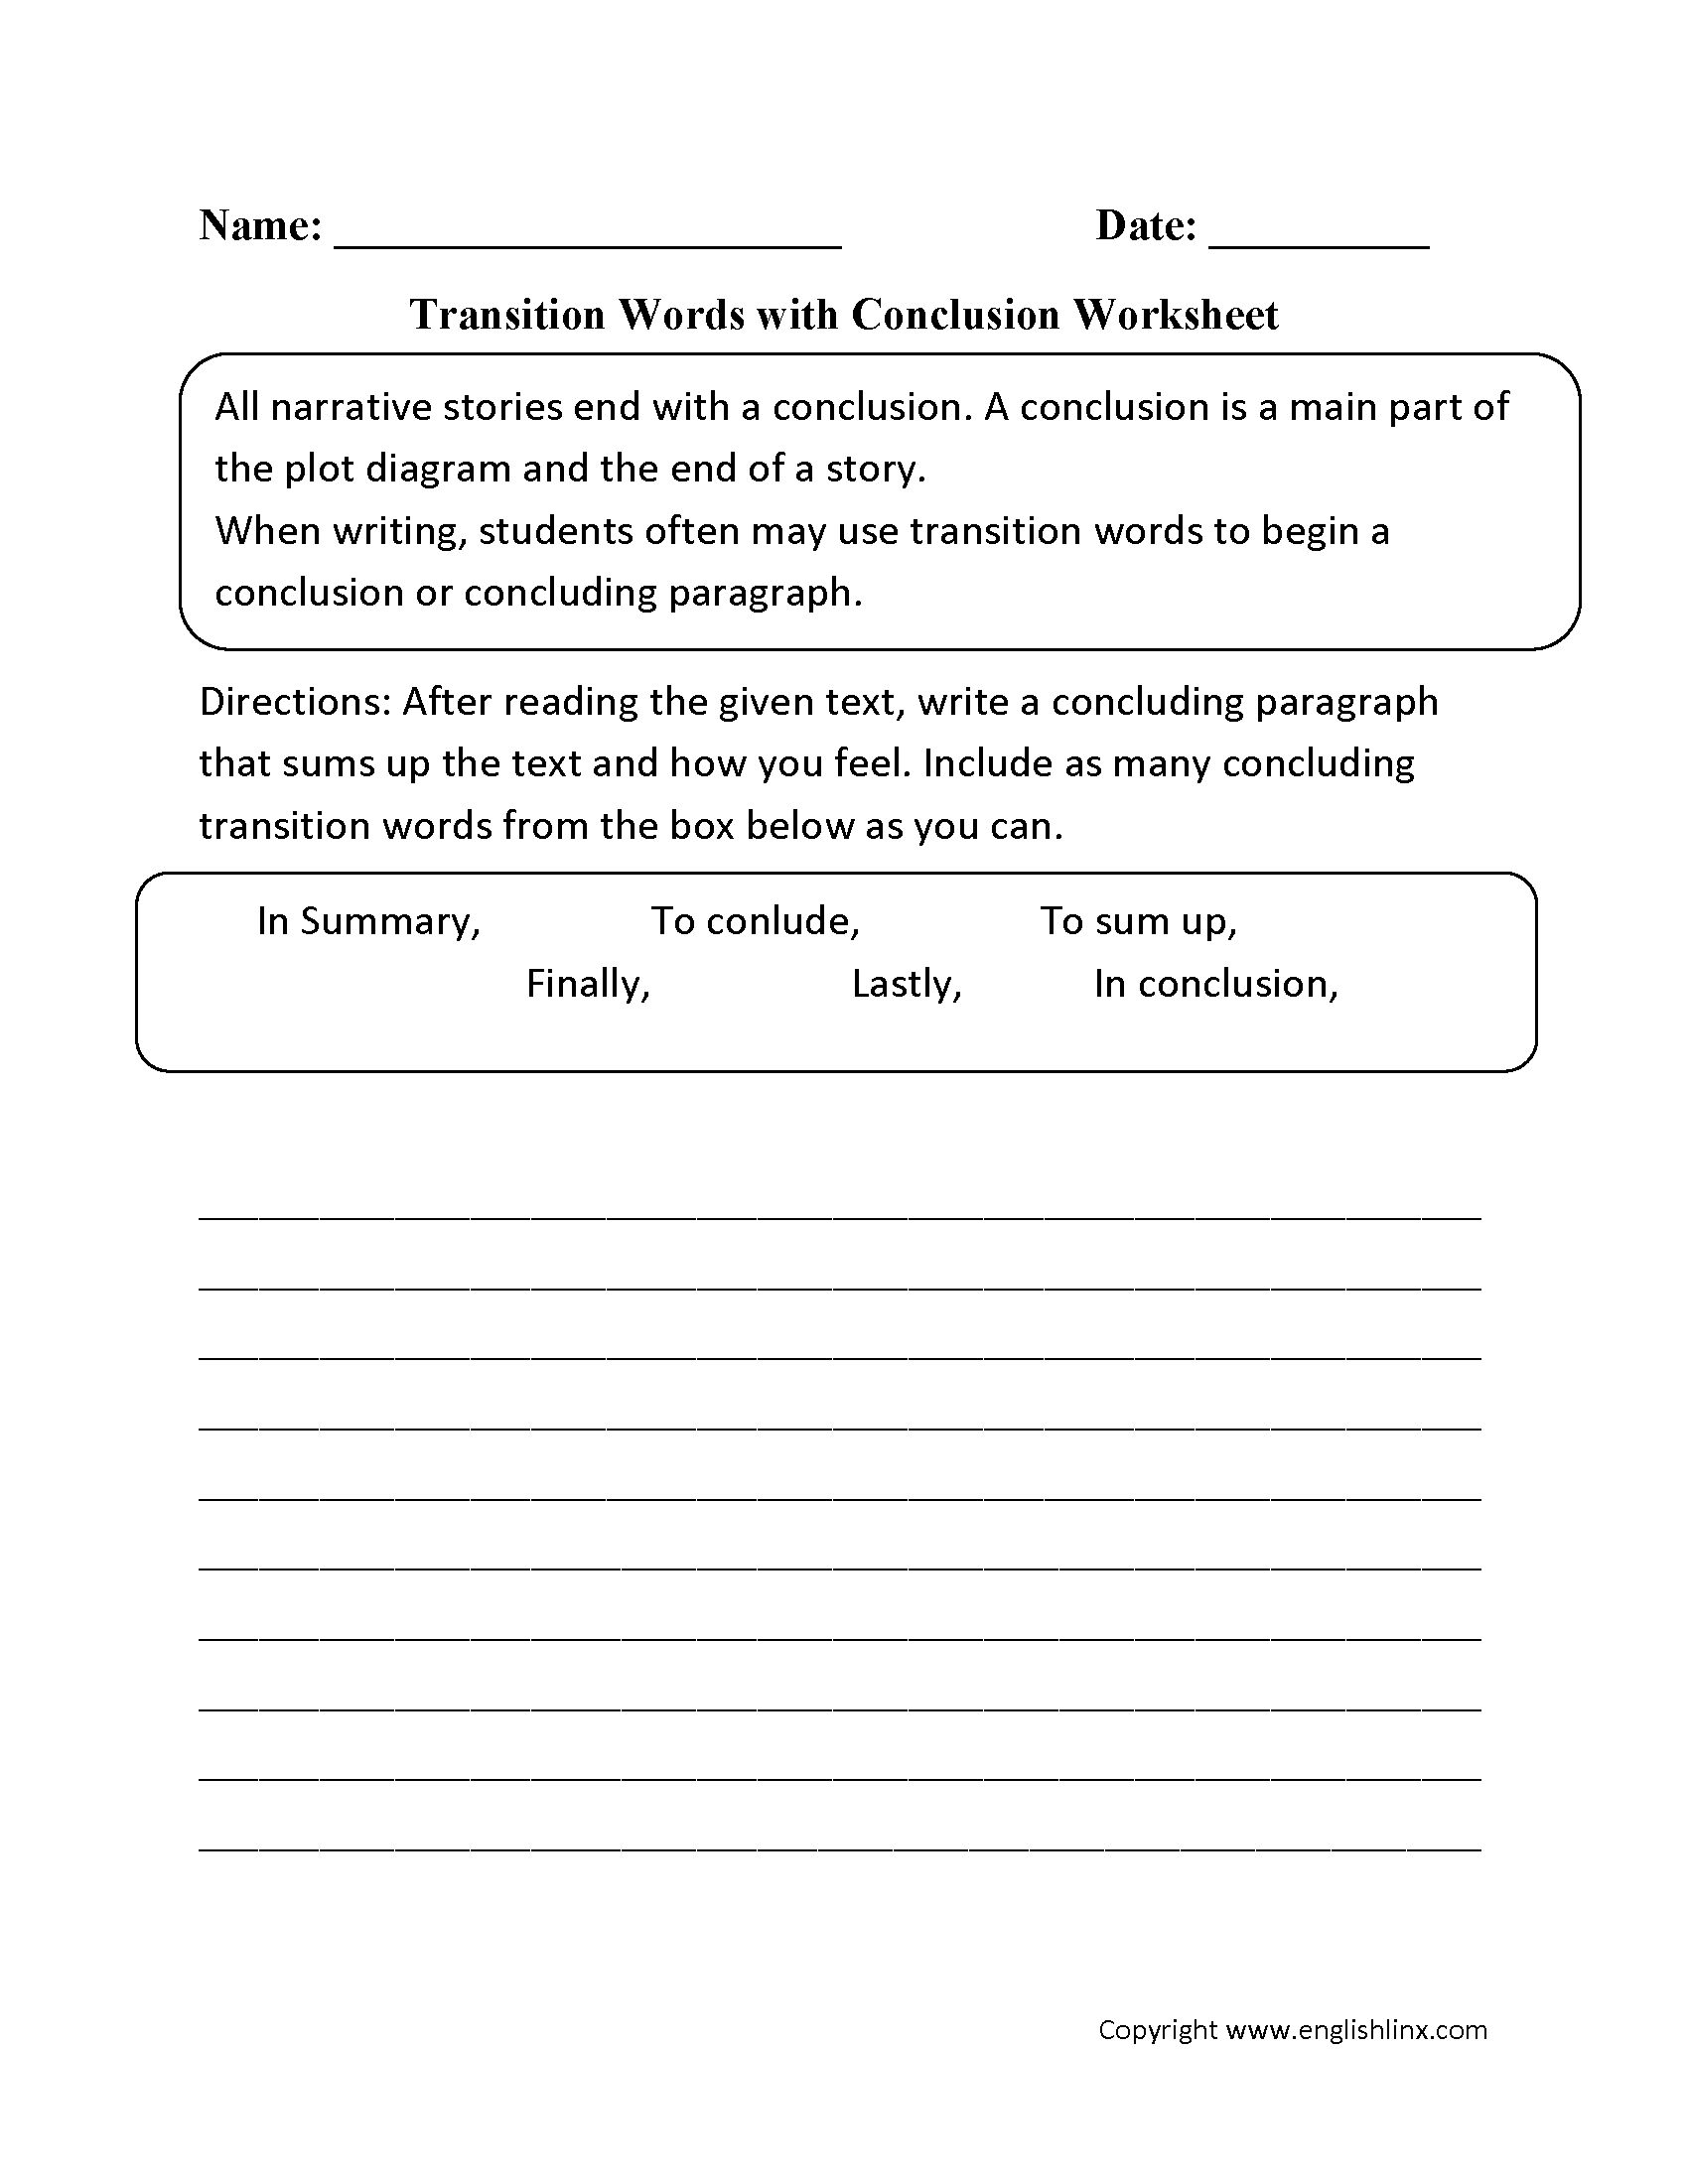 Worksheets Drawing Conclusions Worksheets 3rd Grade reading worksheets drawing conclusions worksheets